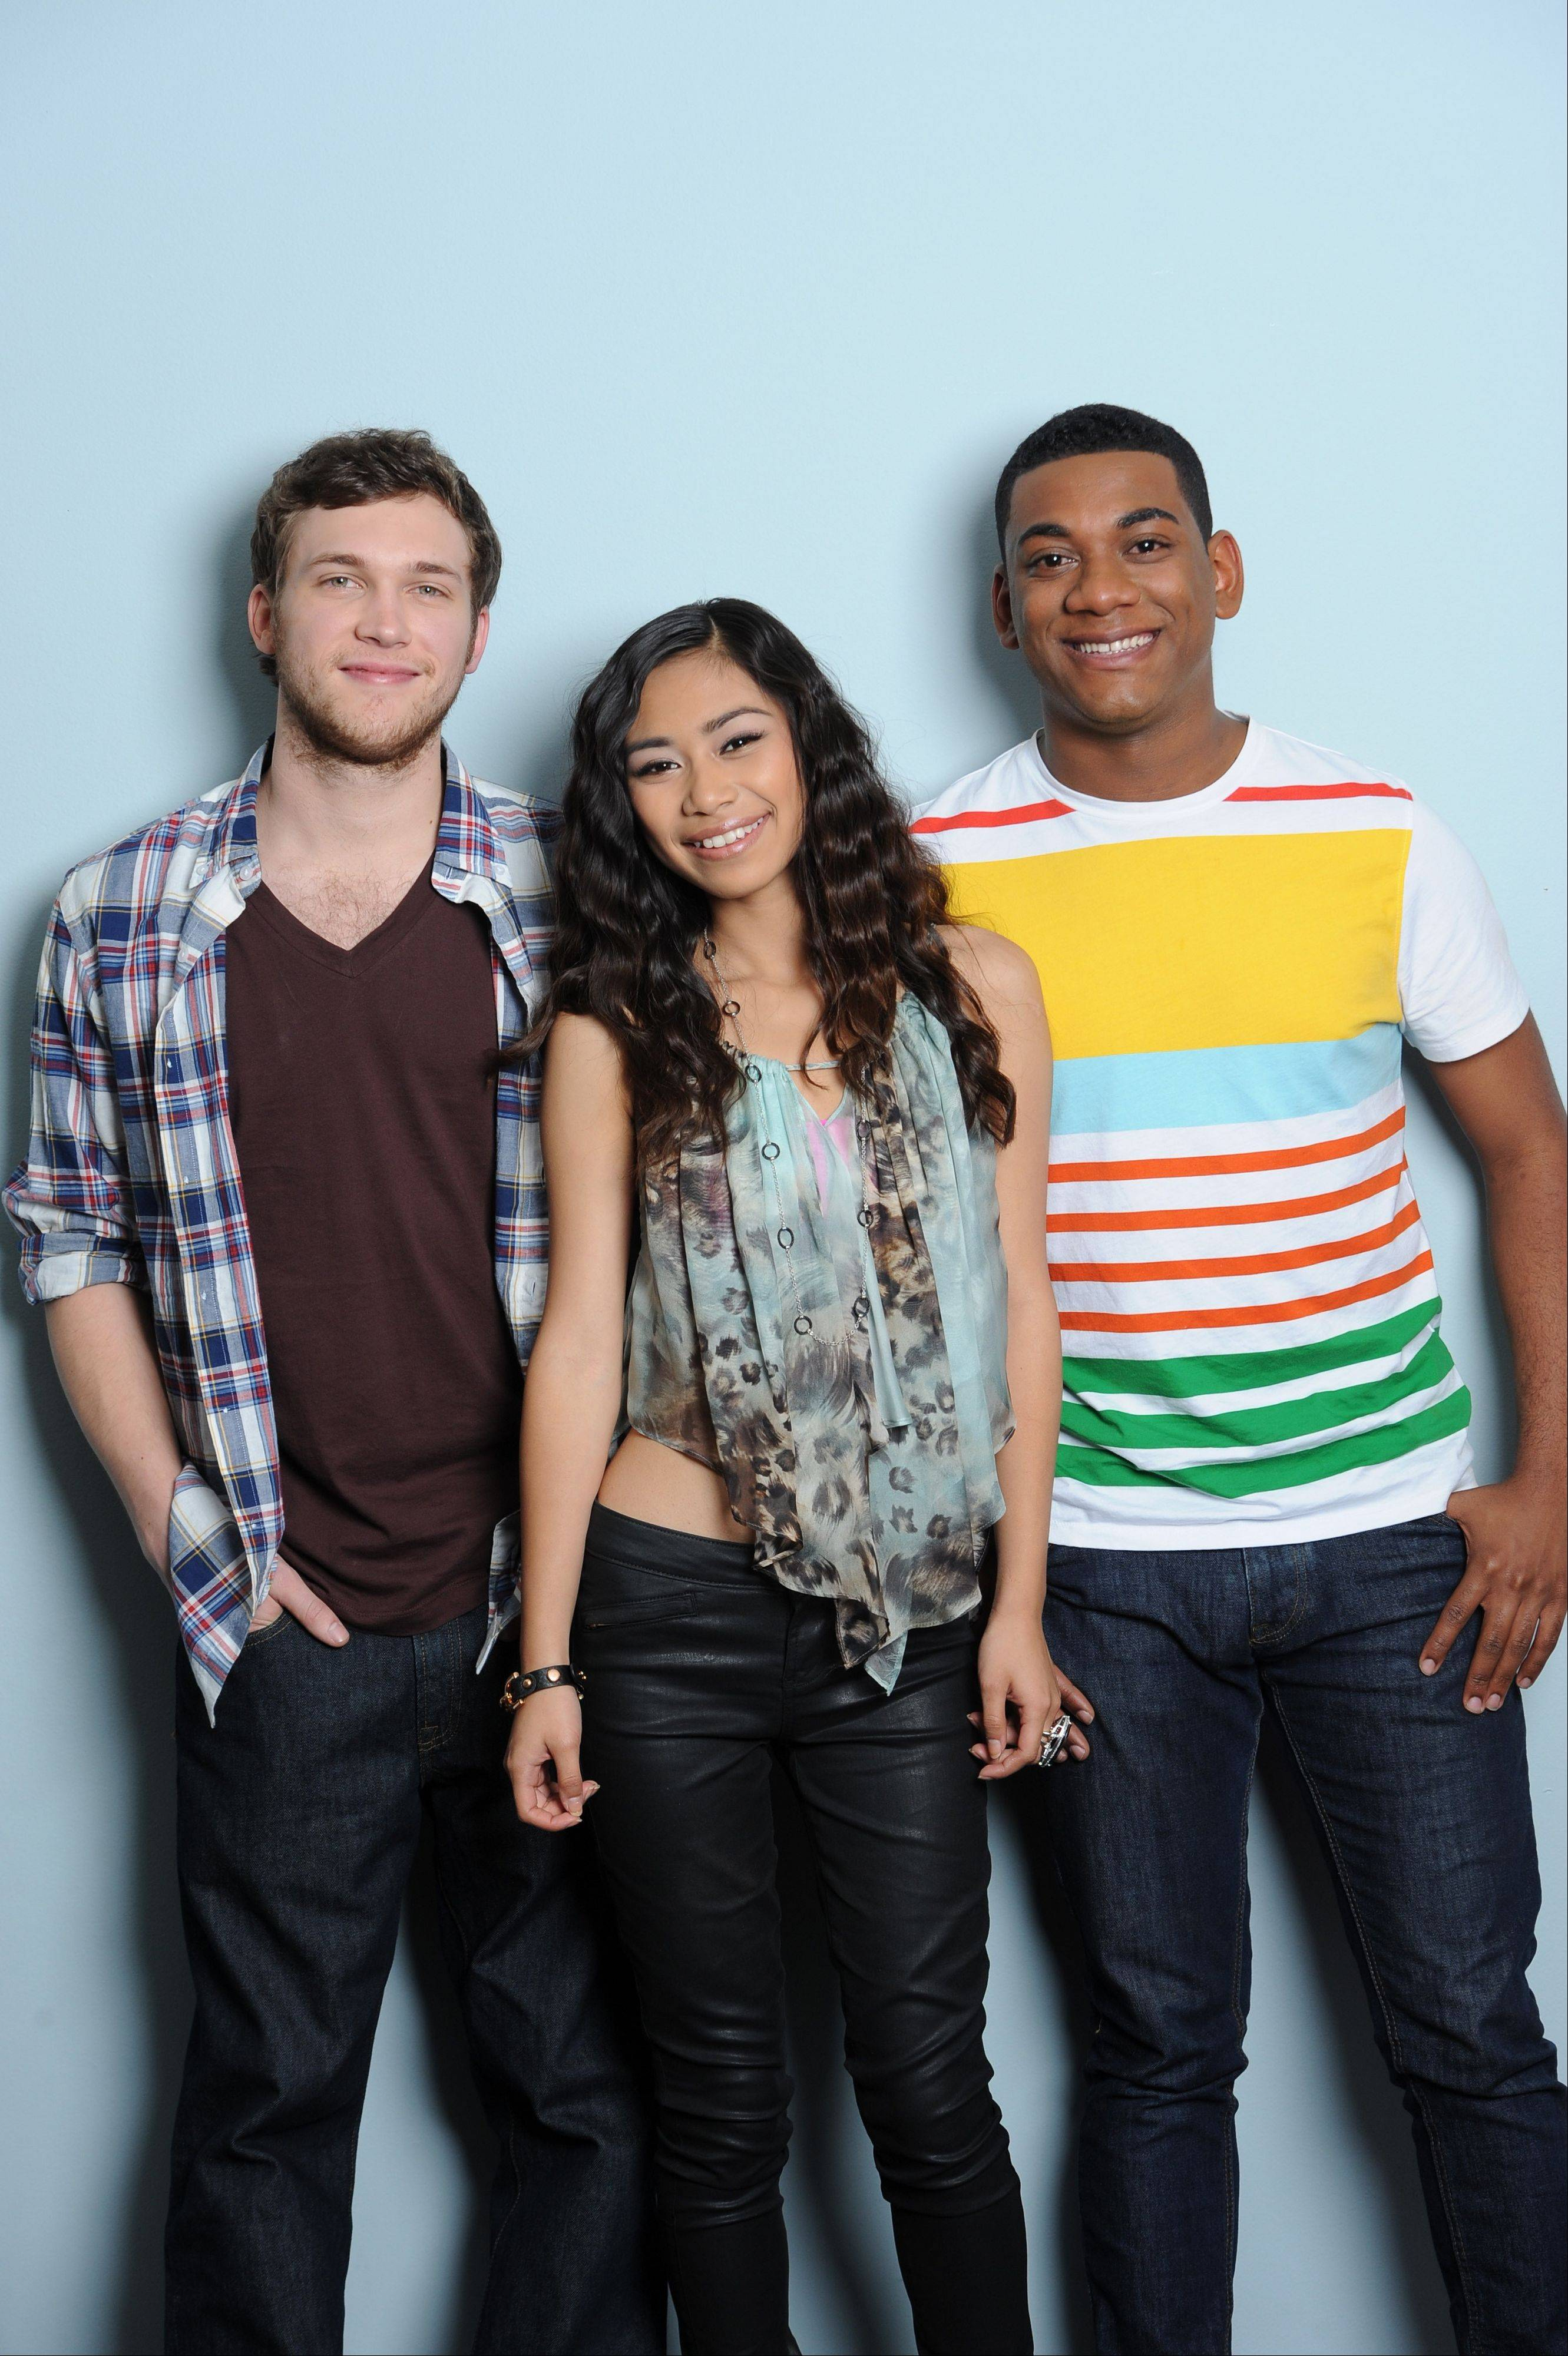 """American Idol"" top three finalists Phillip Phillips, Jessica Sanchez and Josh Ledet are set to appear as part of the American Idol Live! Tour 2012 at the Allstate Arena on Saturday, July 7."